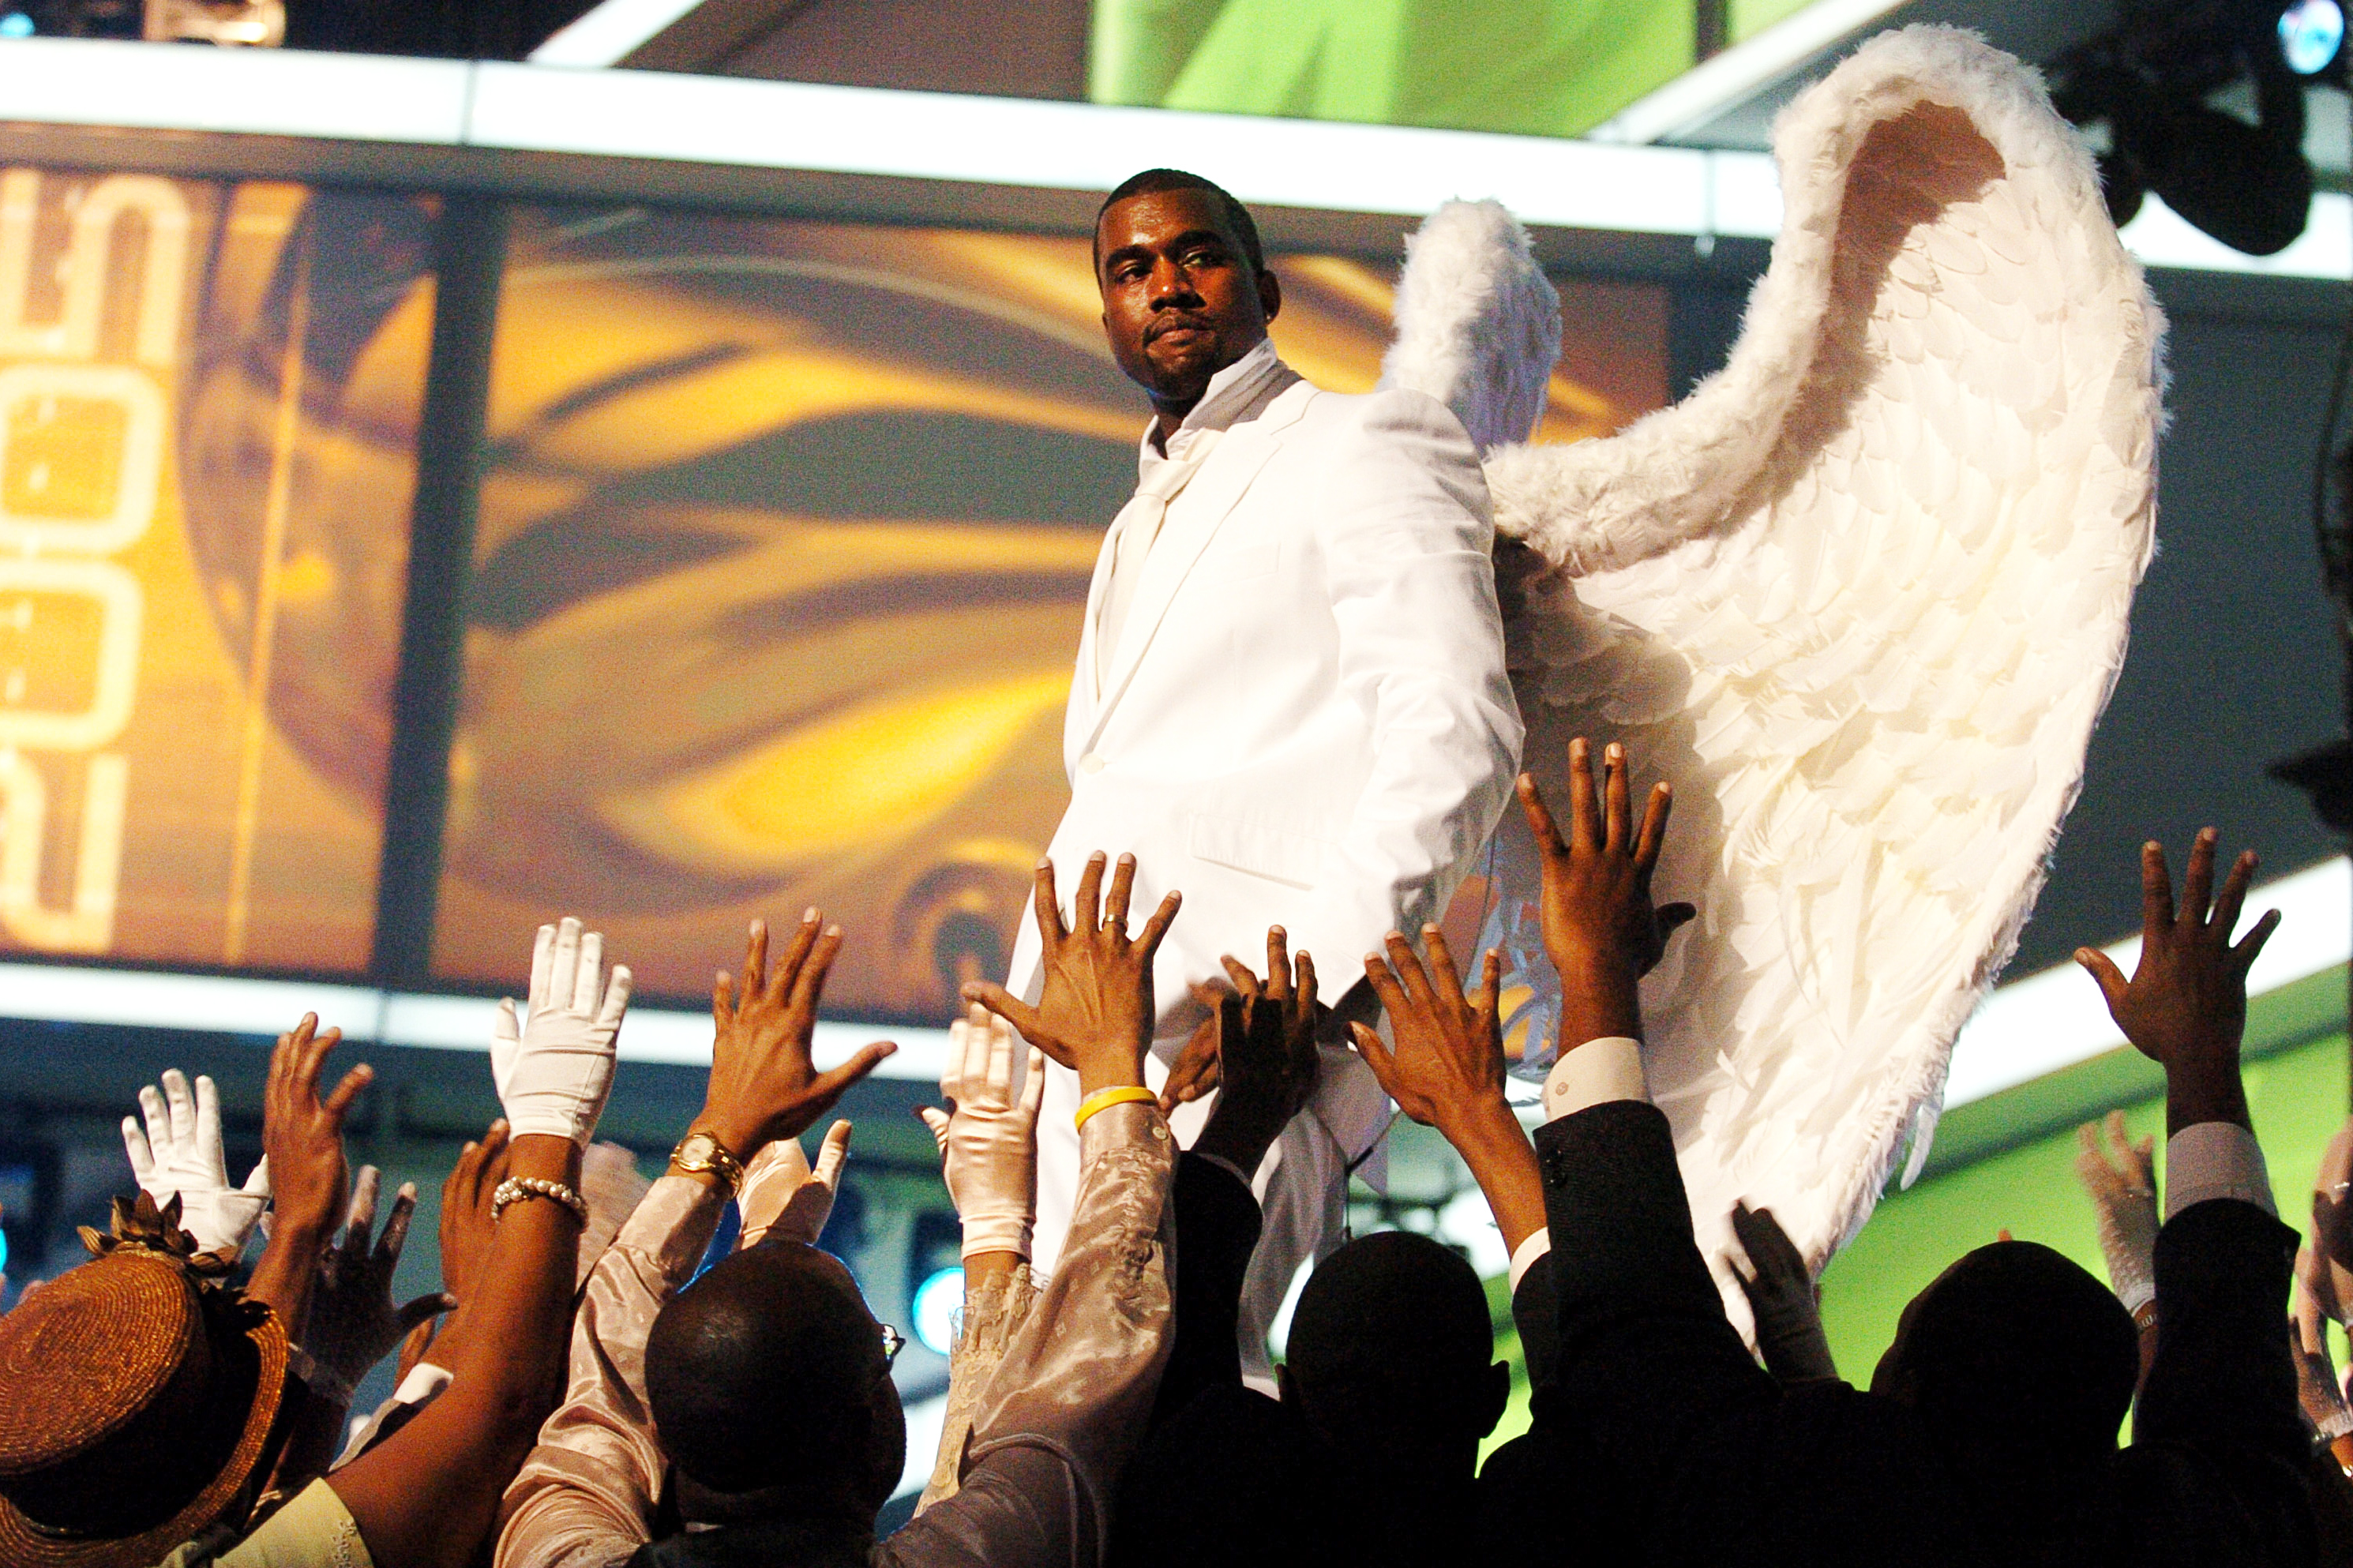 Kanye West performs  Jesus Walks  at the 47th Annual Grammy Awards, on Feb. 13, 2005.